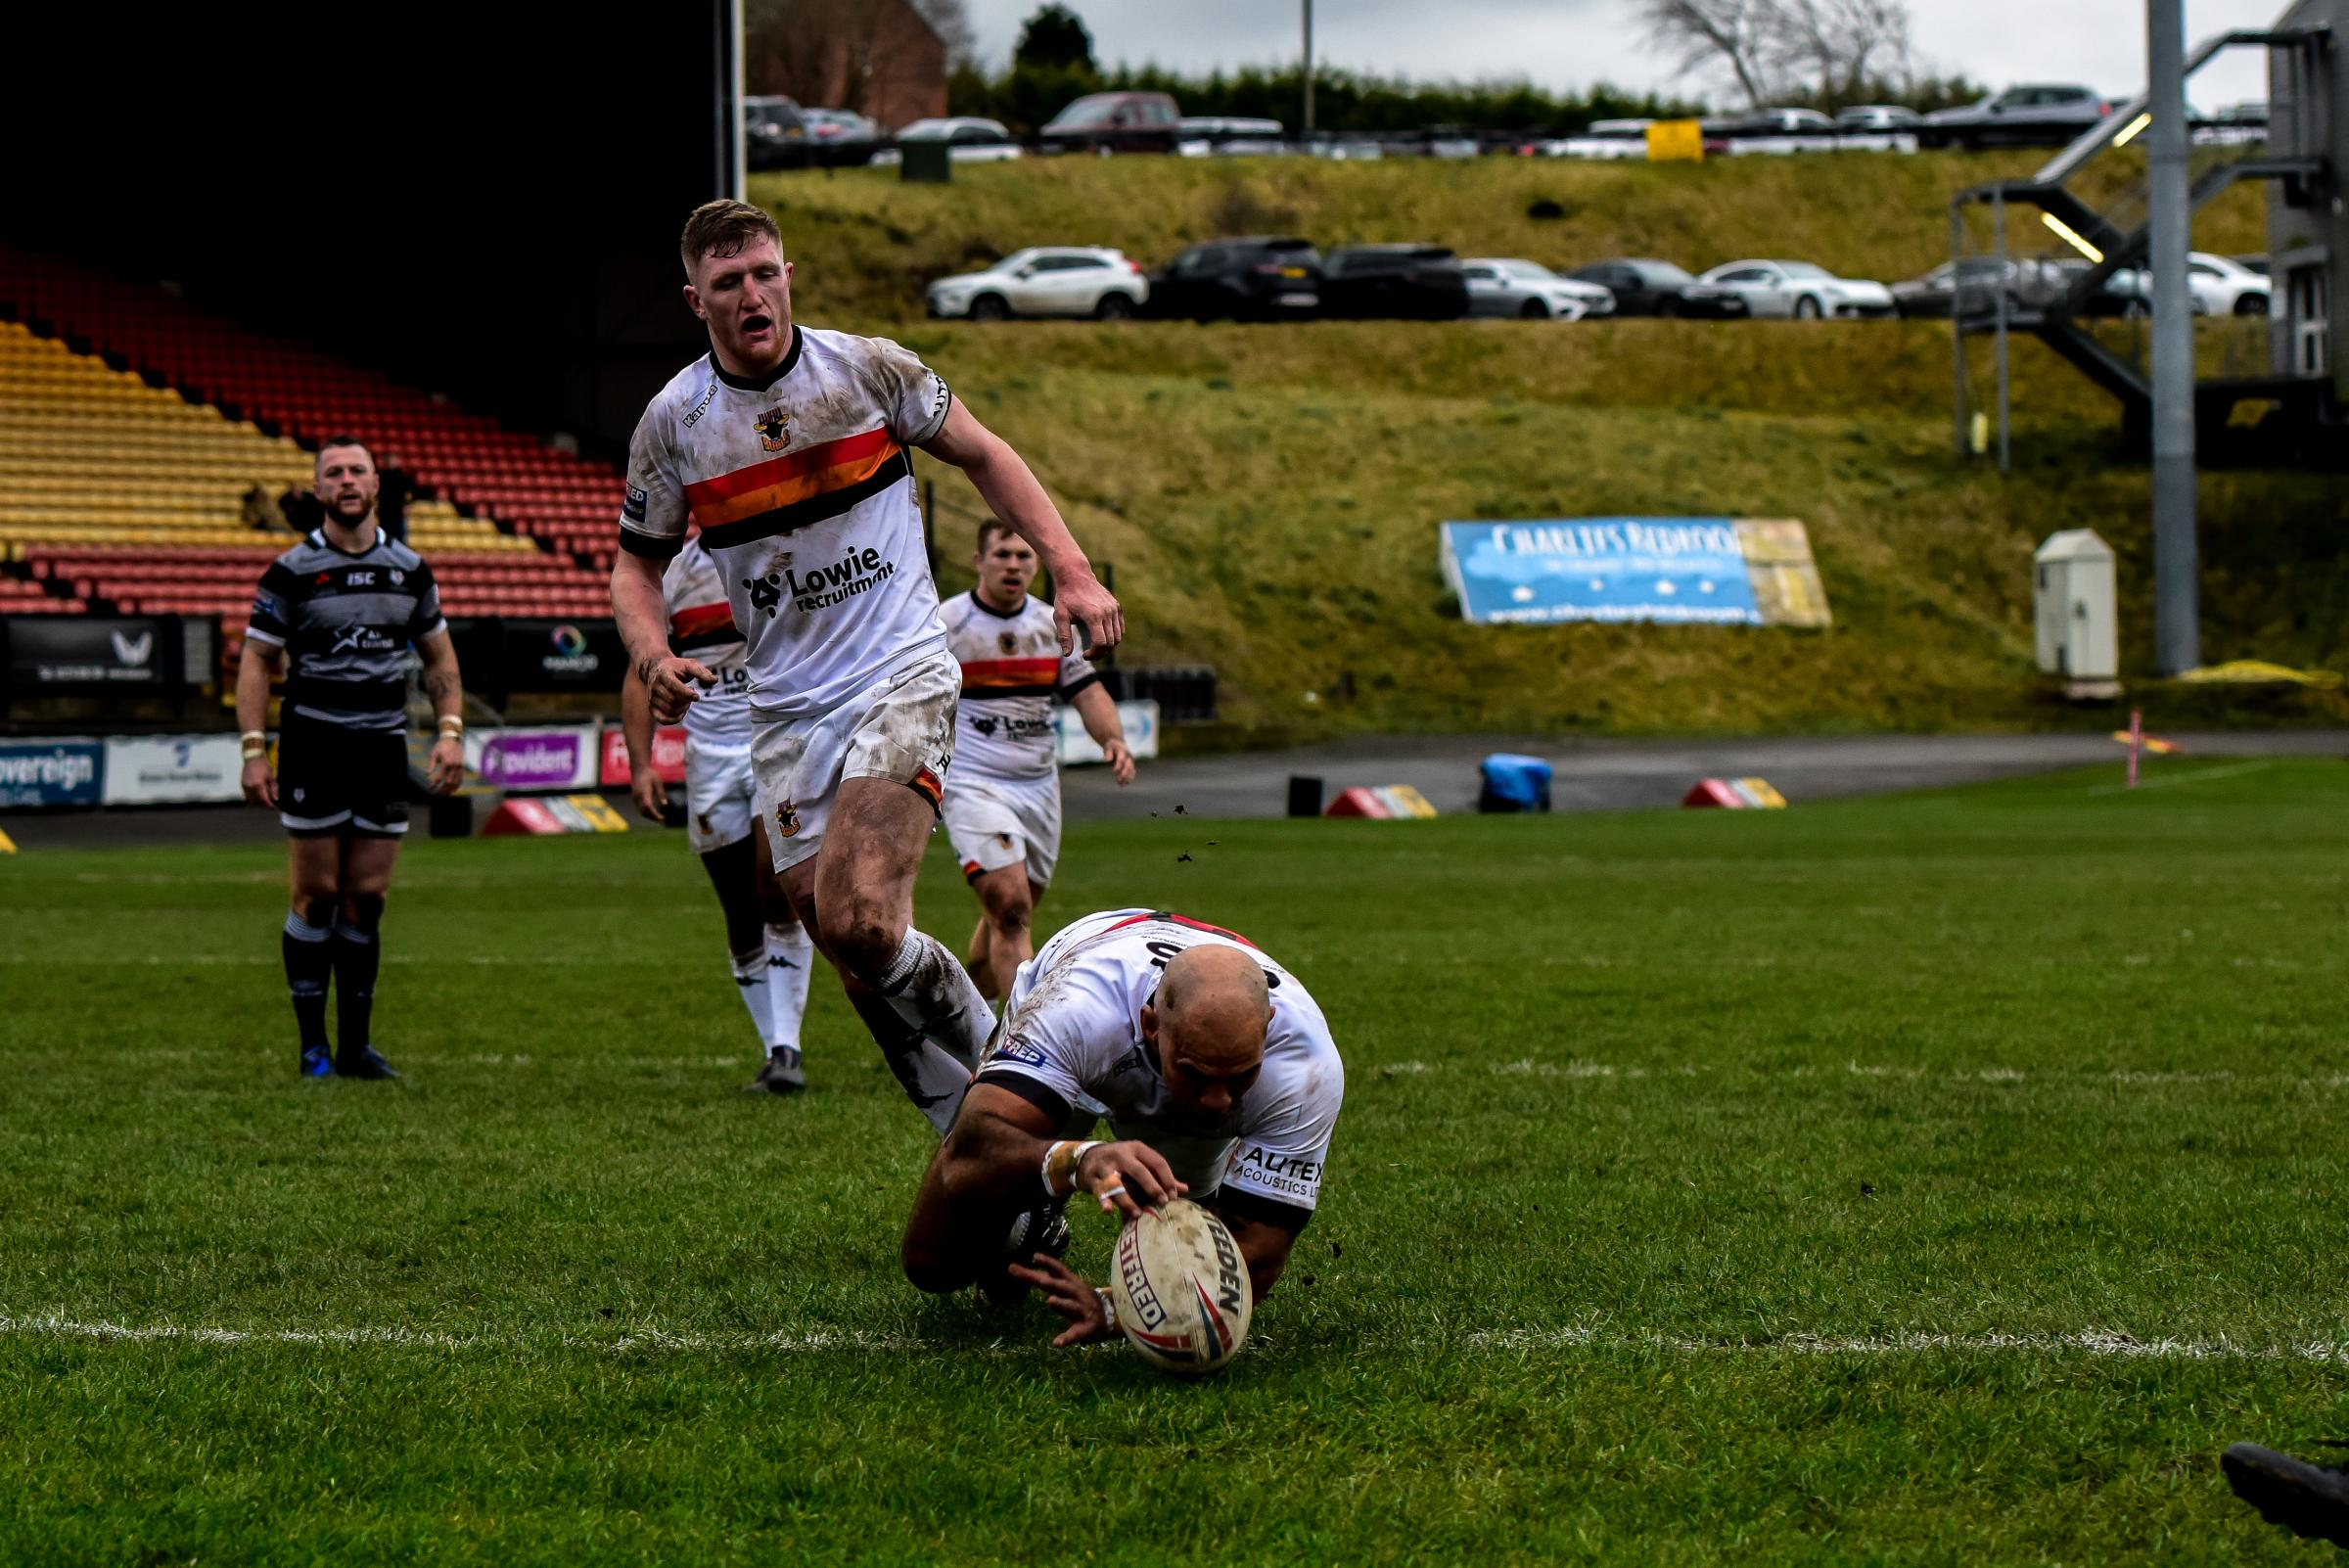 Jake Webster goes over for a try in Bulls' defeat to Toronto   Picture: Tom Pearson